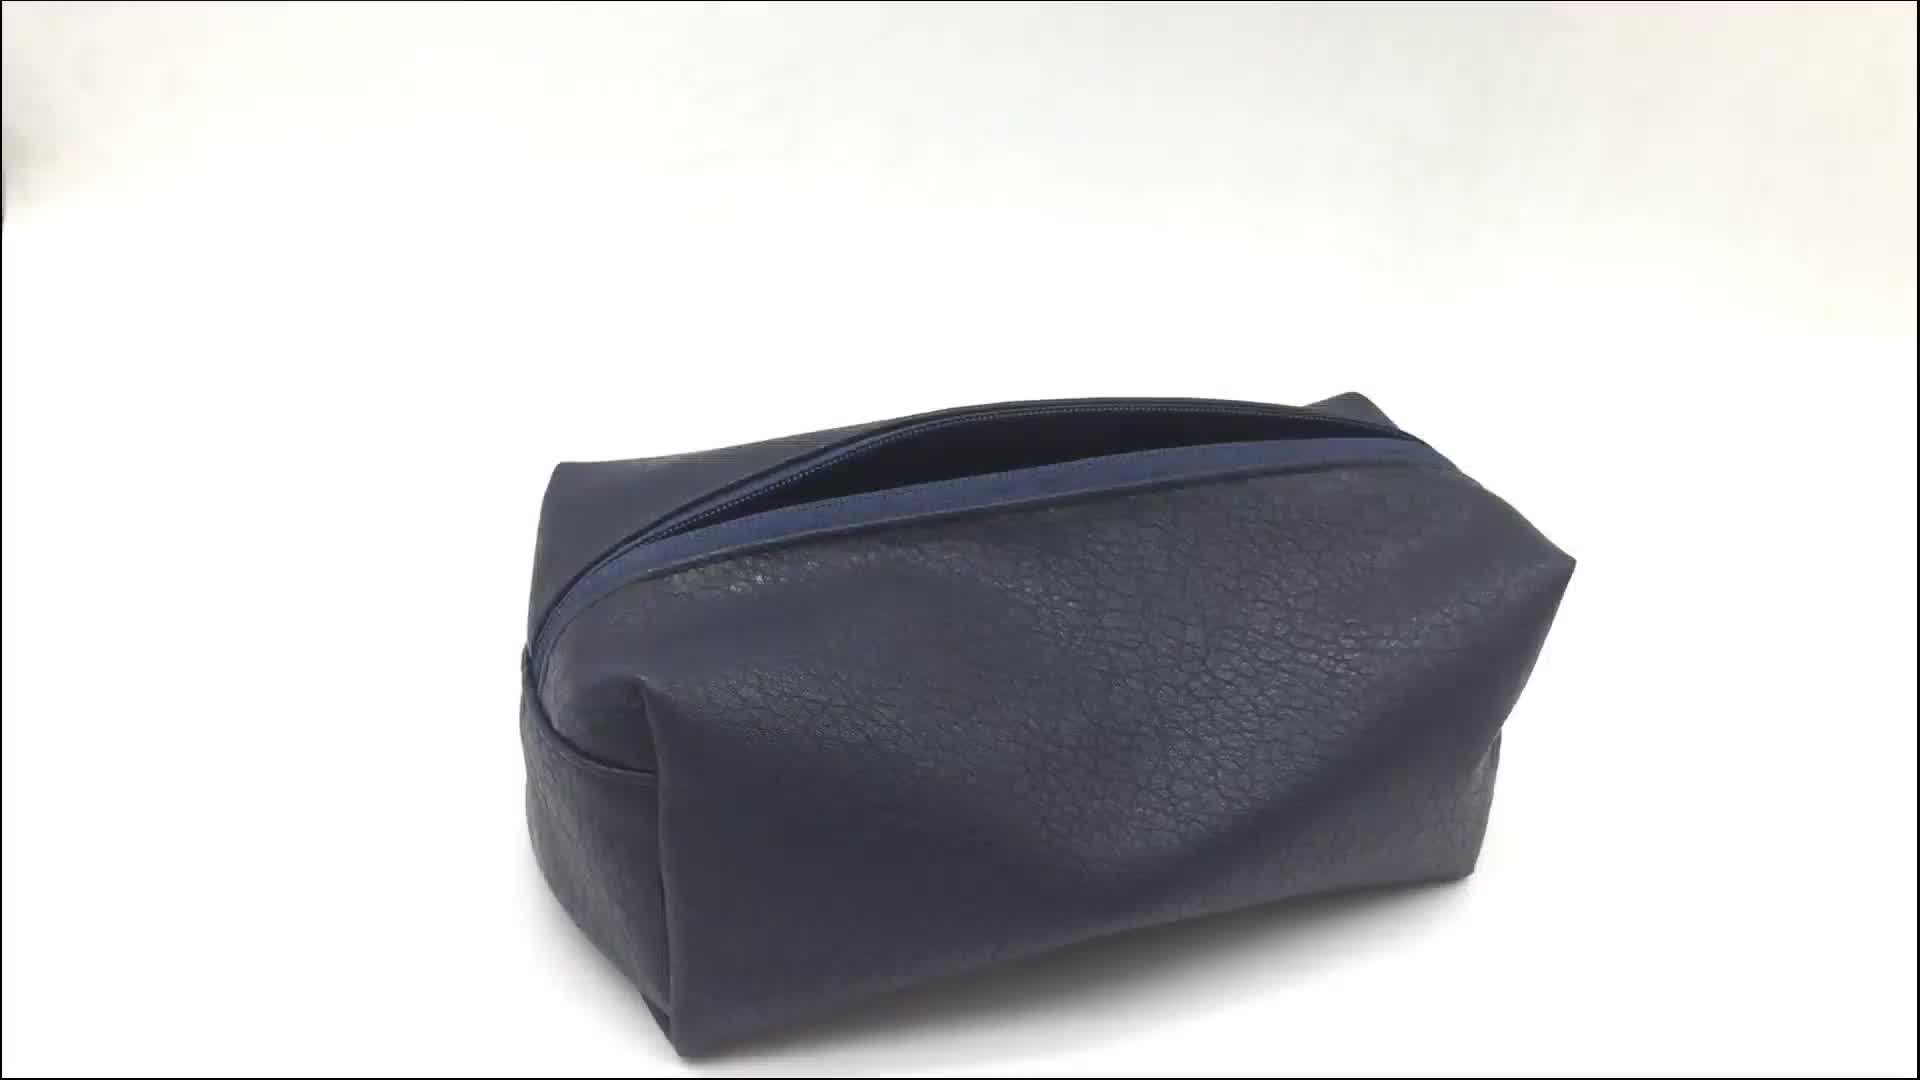 Hot sale better quality Business class Airline amenity Kit